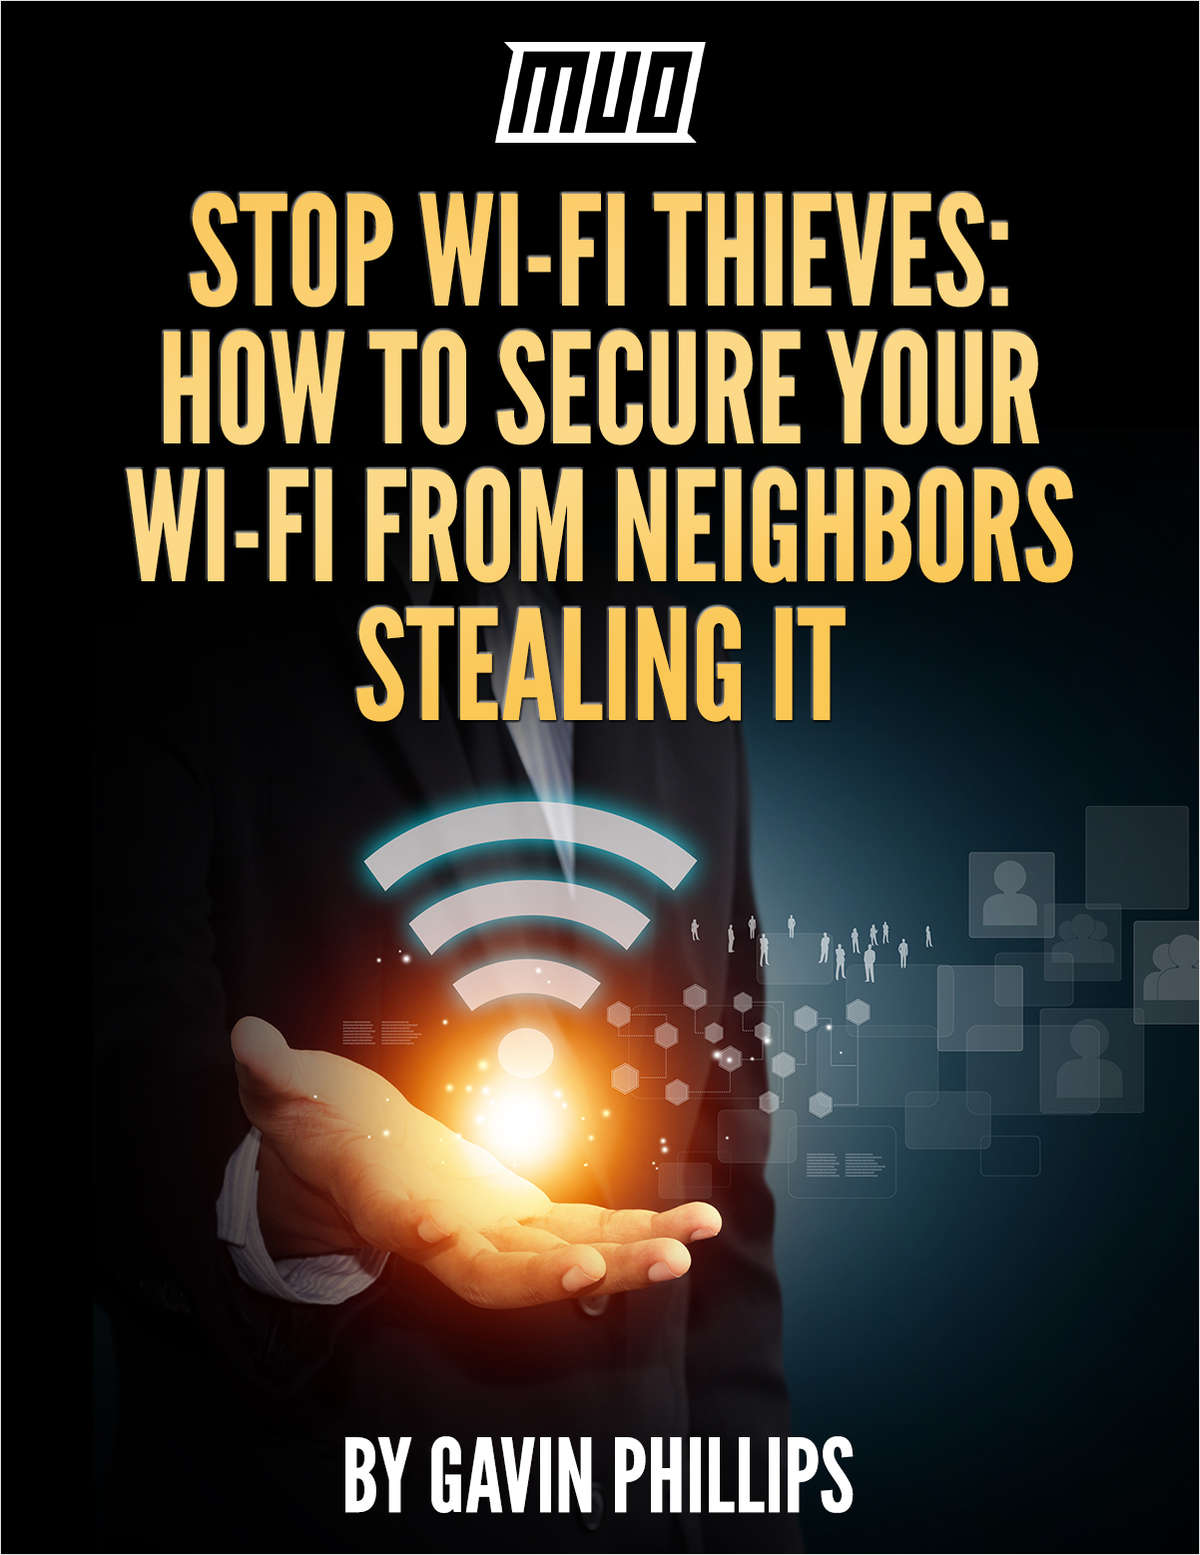 Stop Wi-Fi Thieves - How to Secure Your Wi-Fi From Neighbors Stealing It